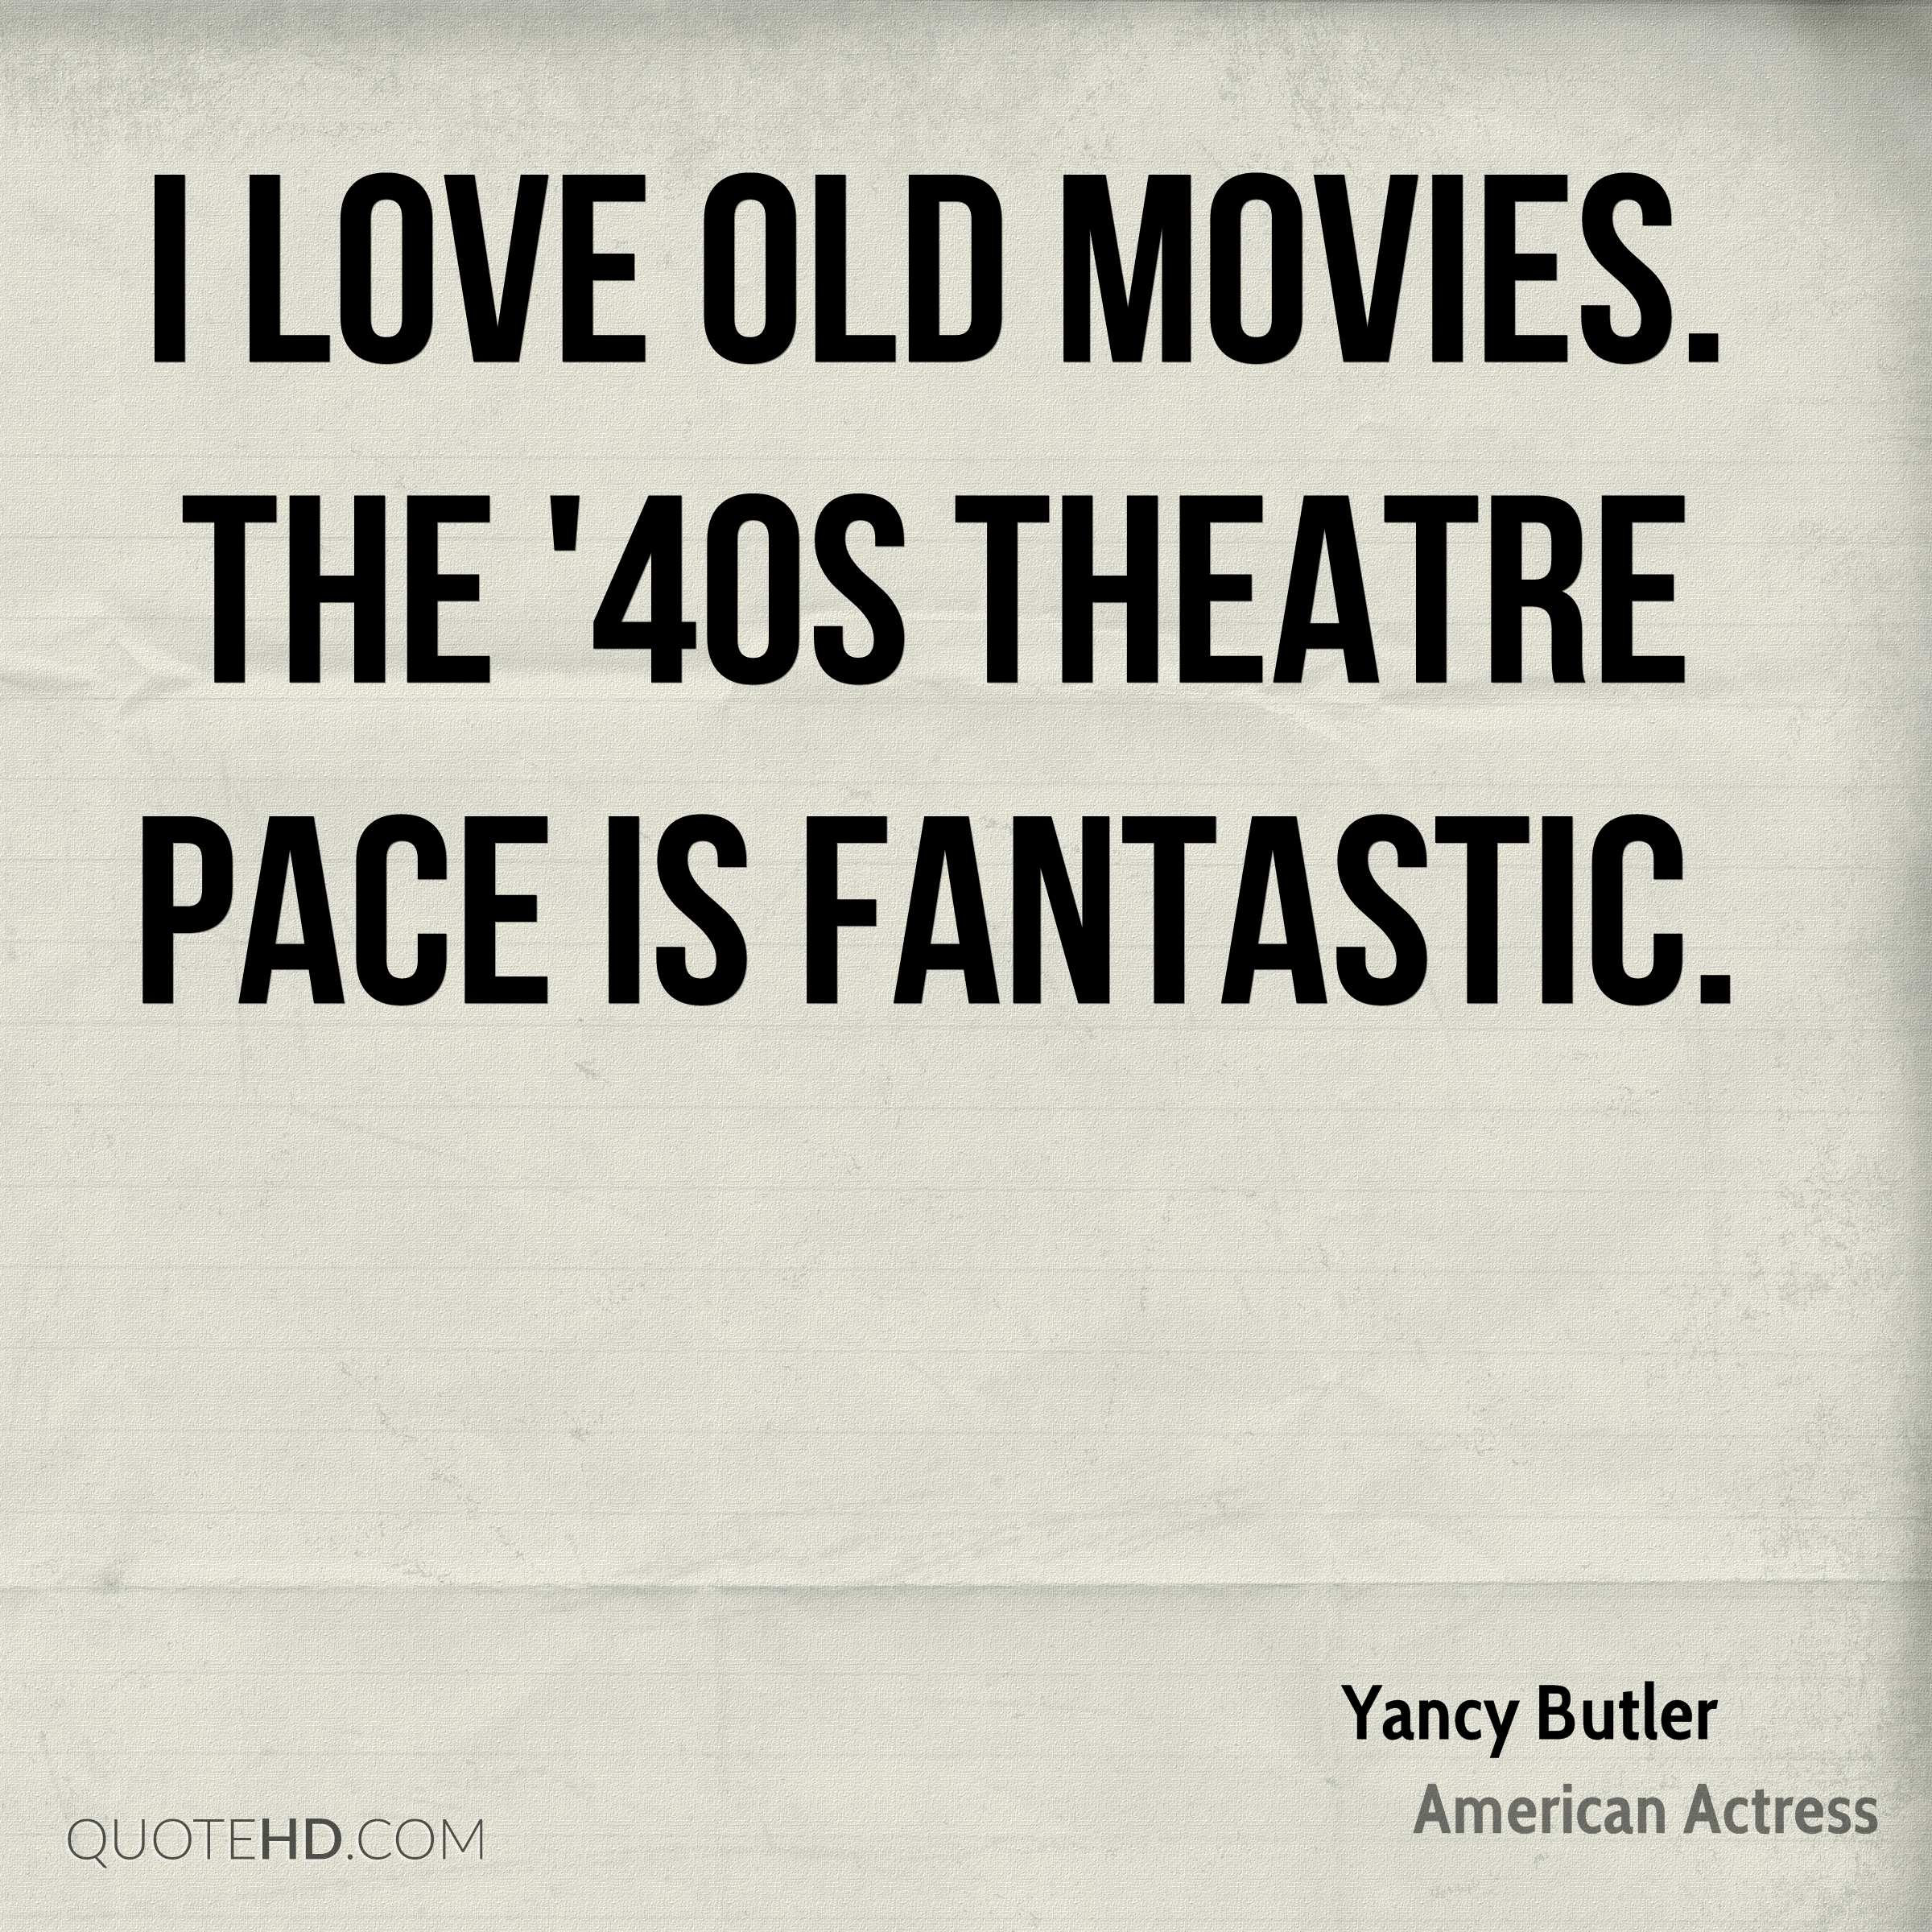 I love old movies. The '40s theatre pace is fantastic.